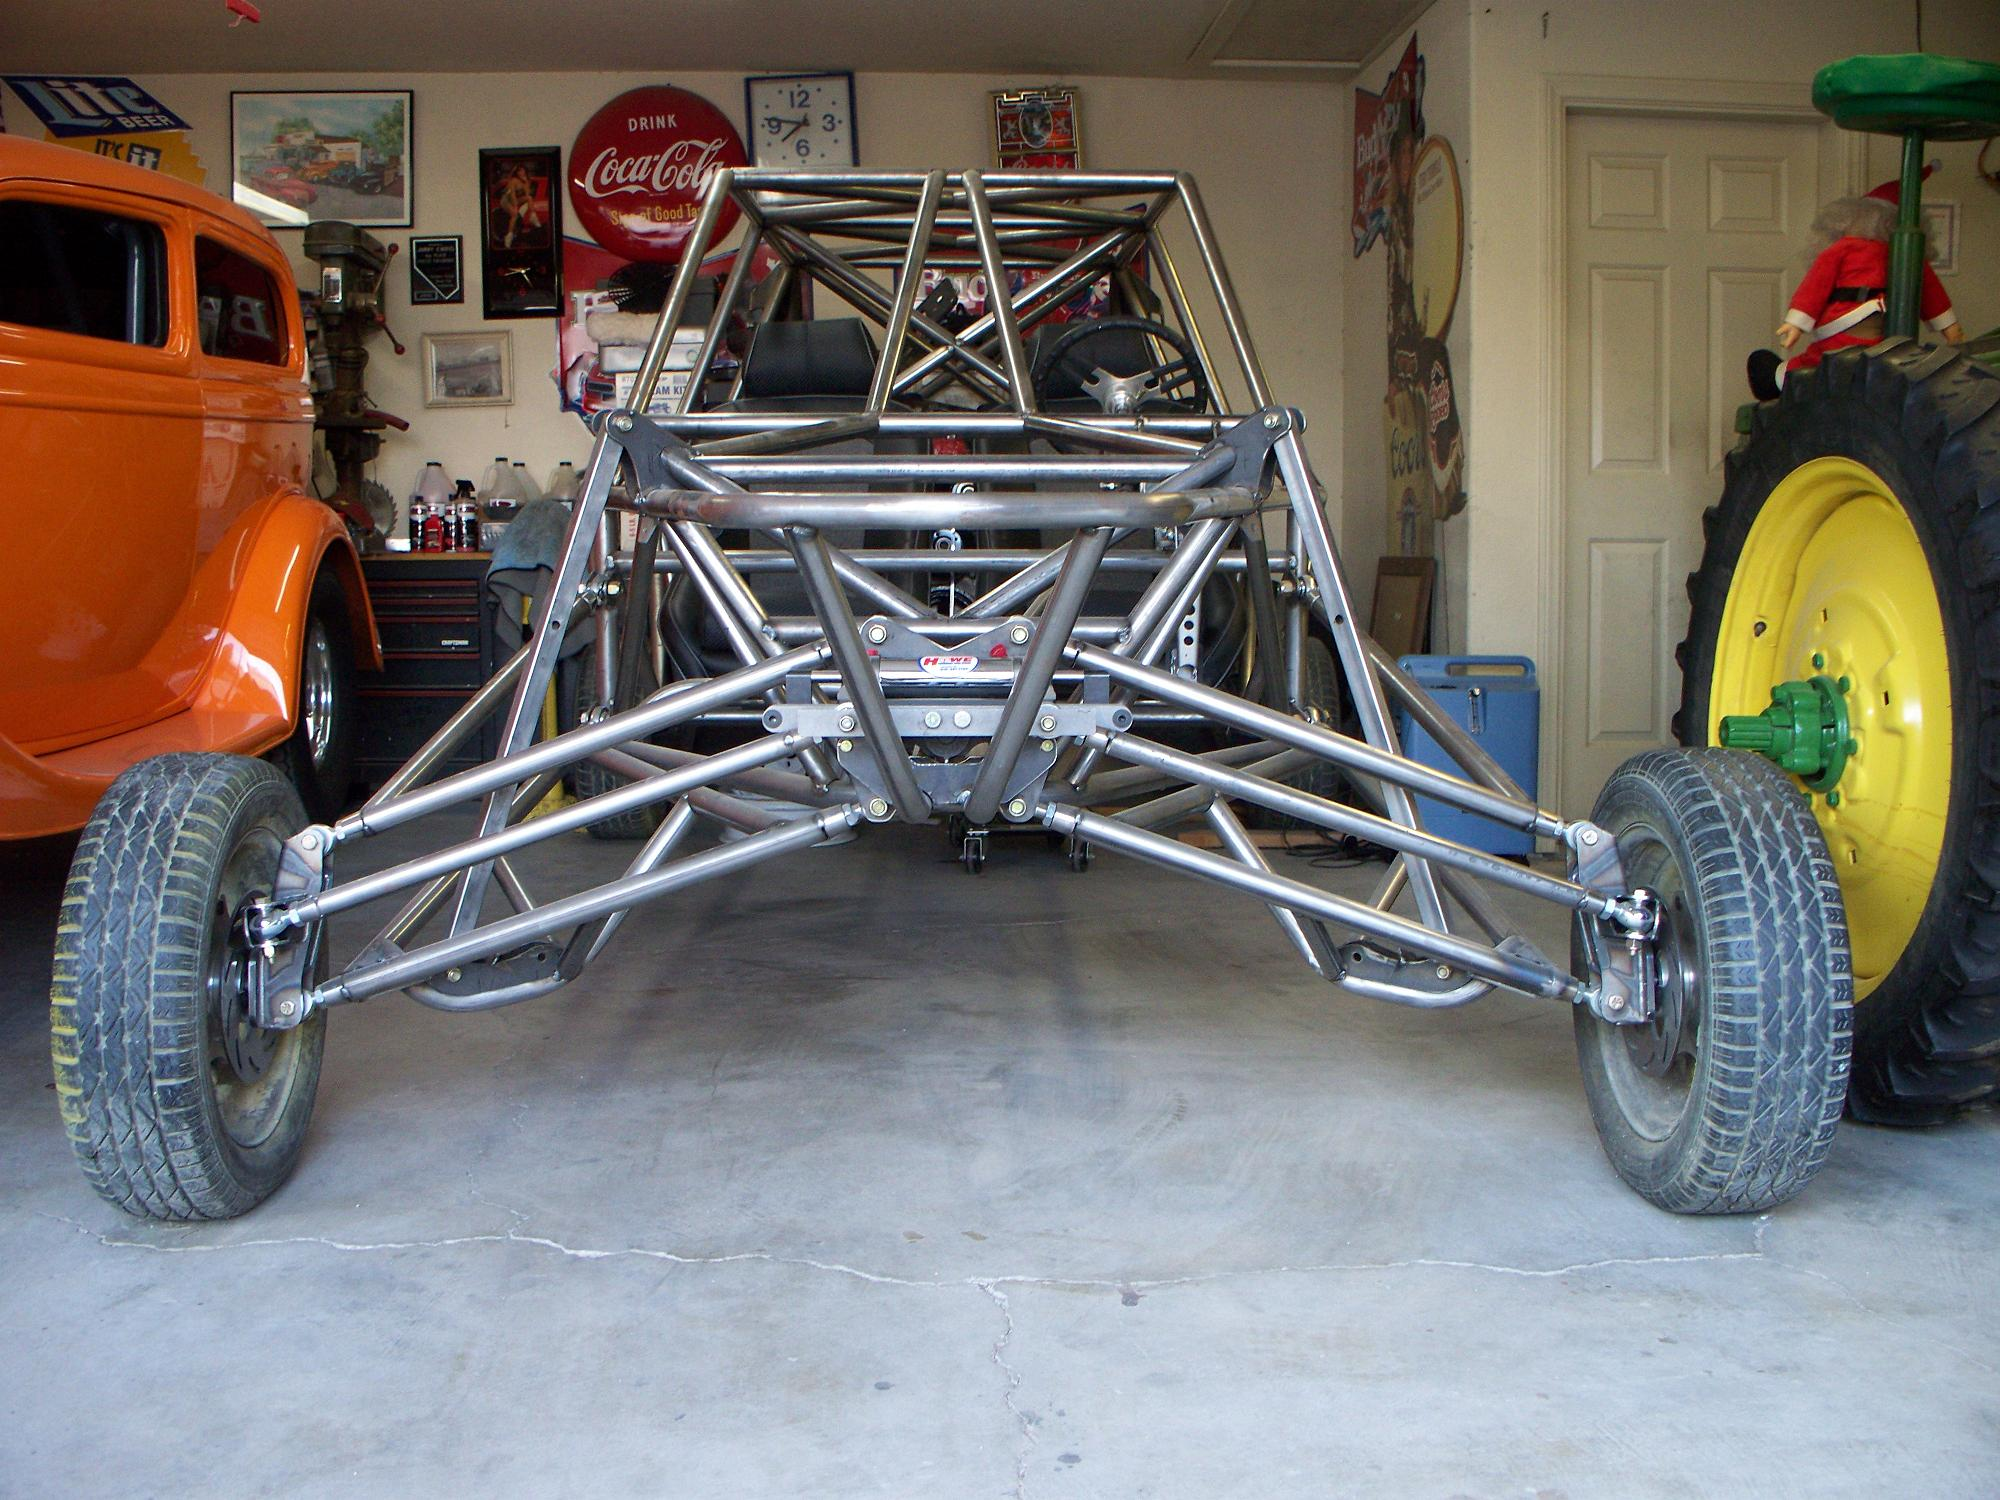 V8 mid-engine sandrail project car for sale - Sandrails for